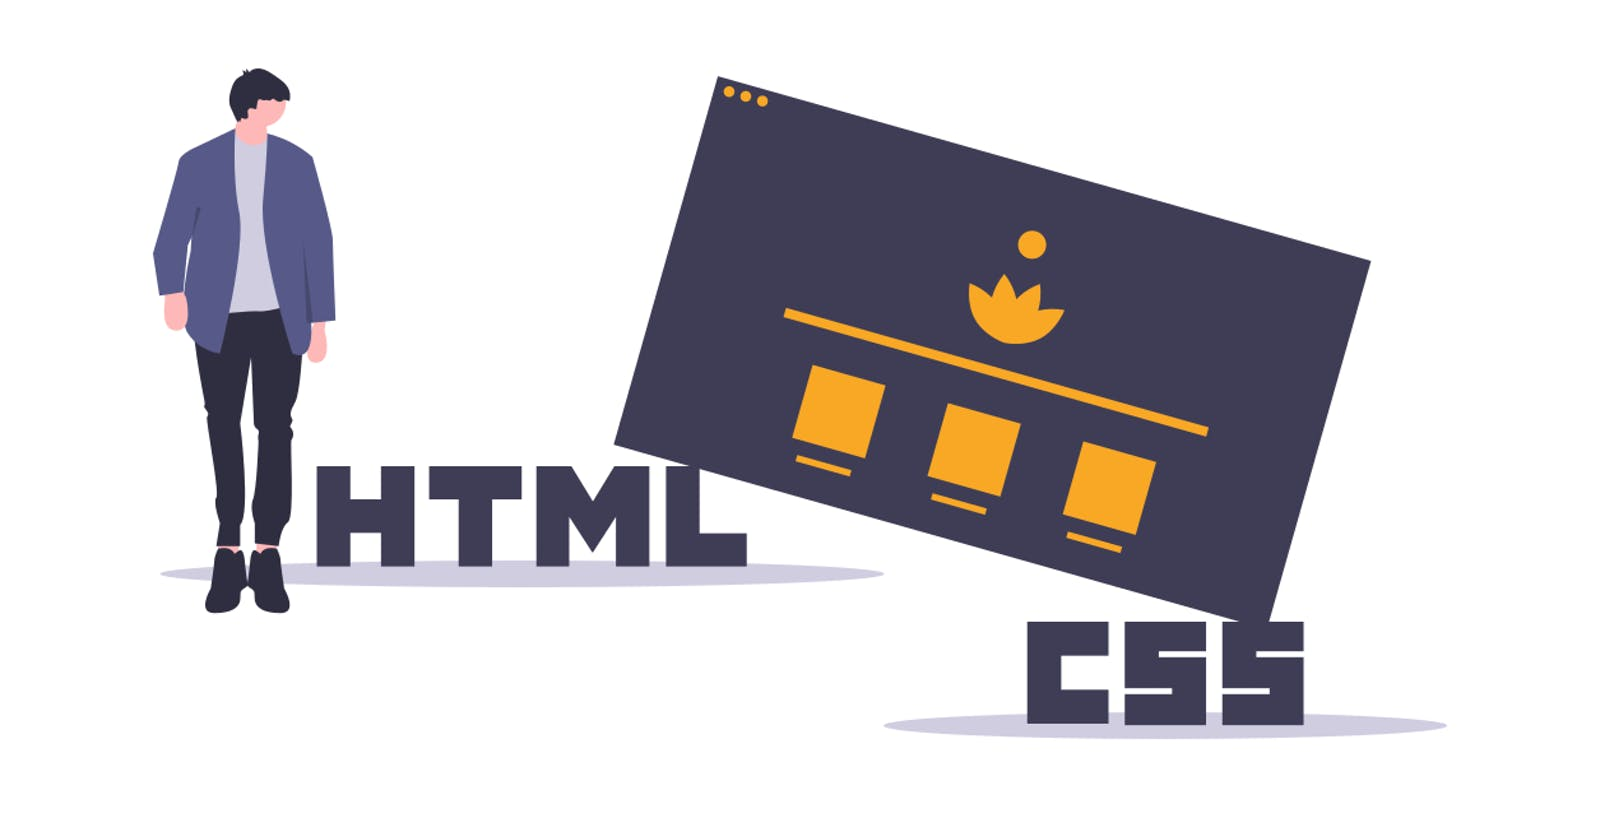 You want to learn HTML & CSS but don't know where to get started?